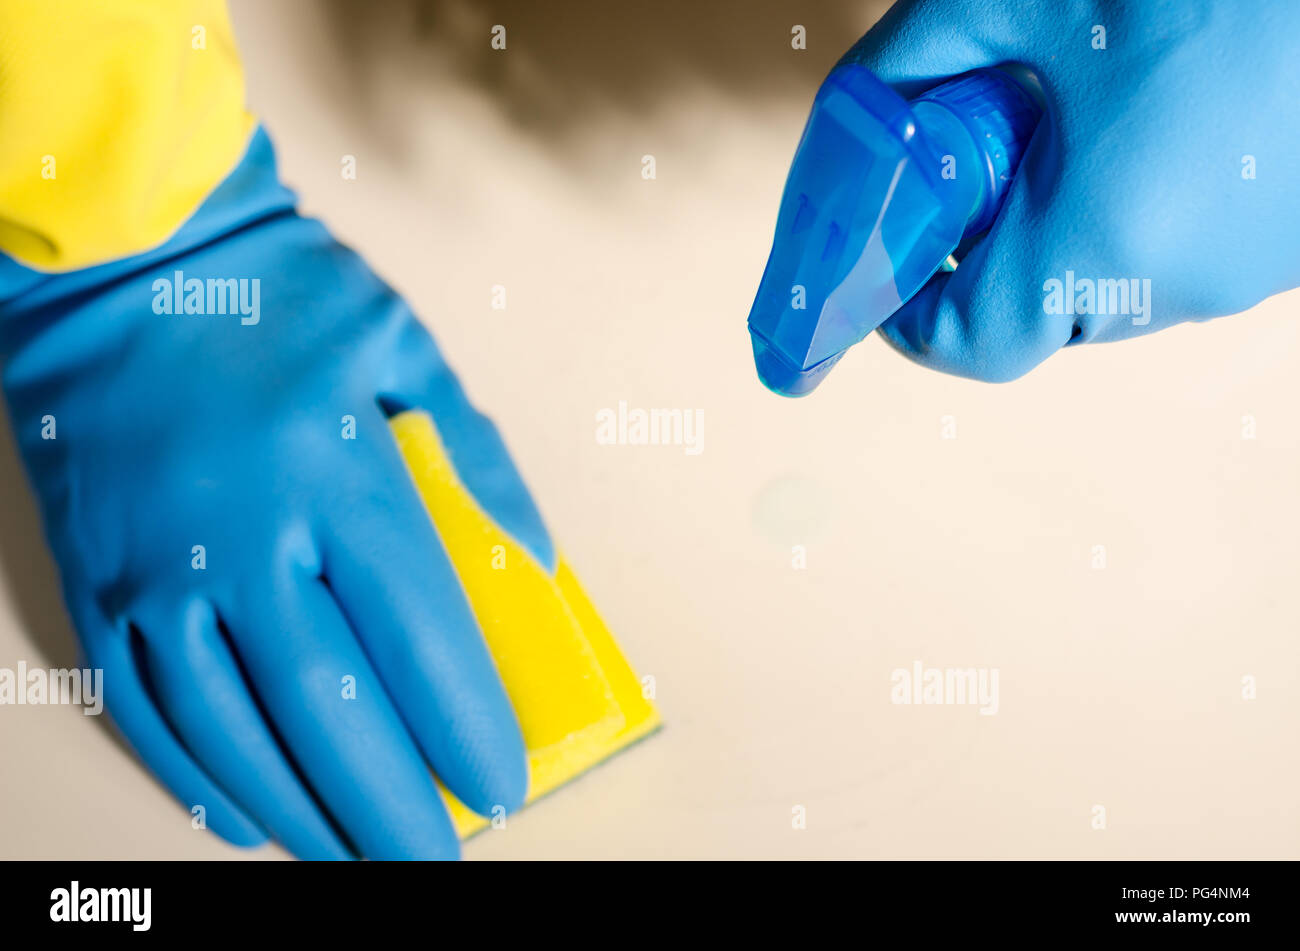 hands in rubber gloves cleaning the surfaces of ceramic tiles, safe and hygienic cleaning, keeping the house clean - Stock Image